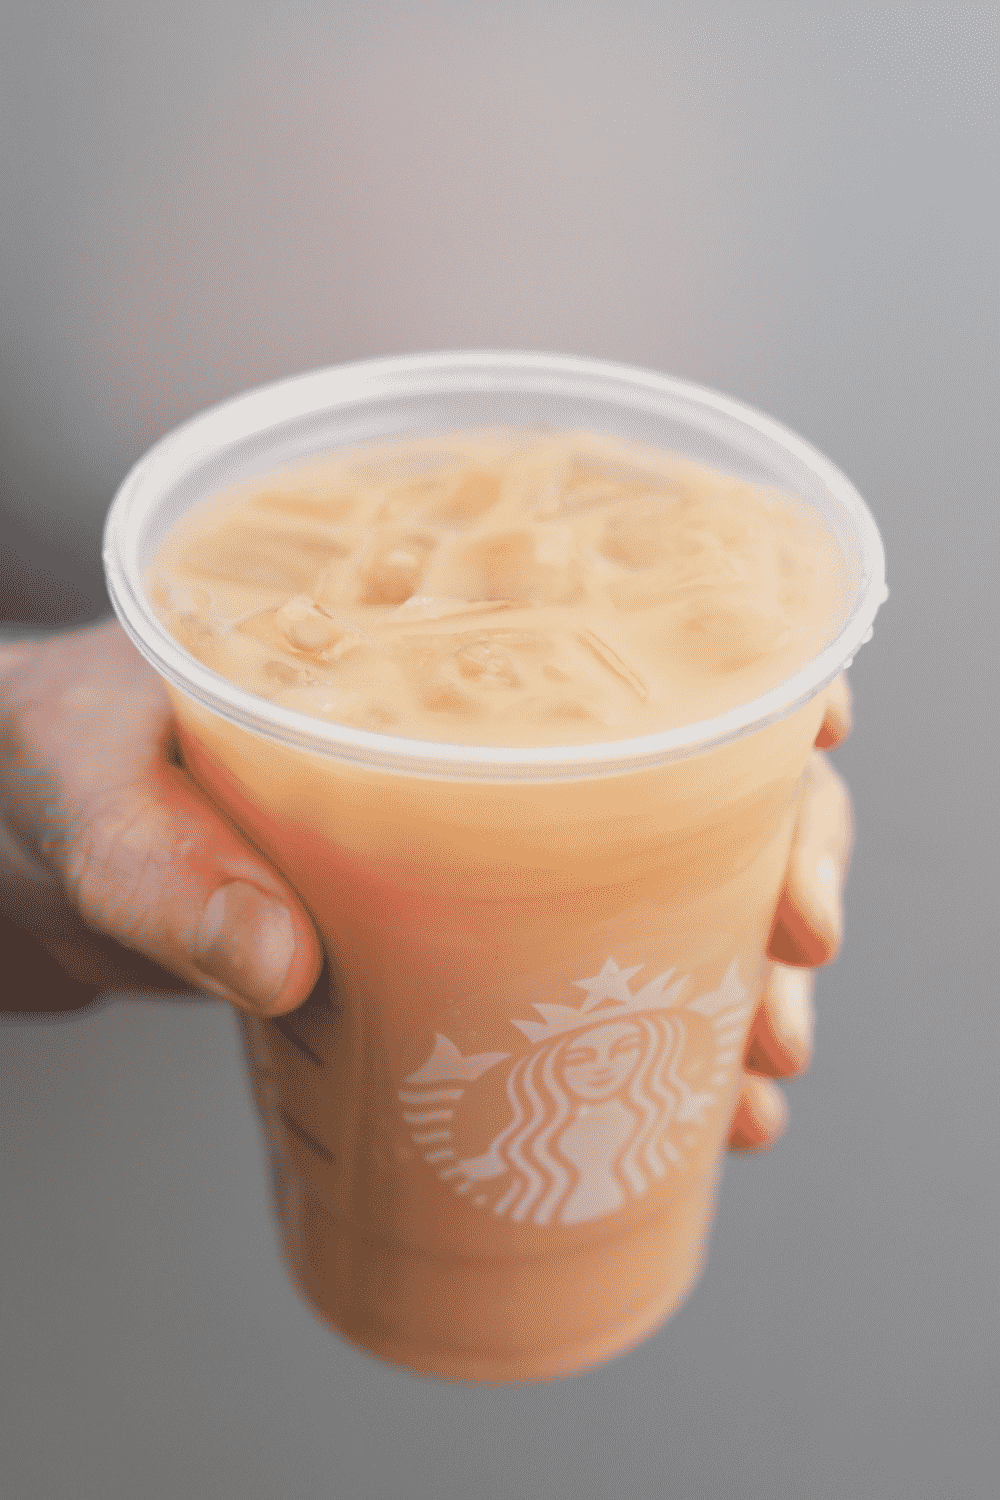 A hand holding a cup of Starbucks iced royal English breakfast tea latte.